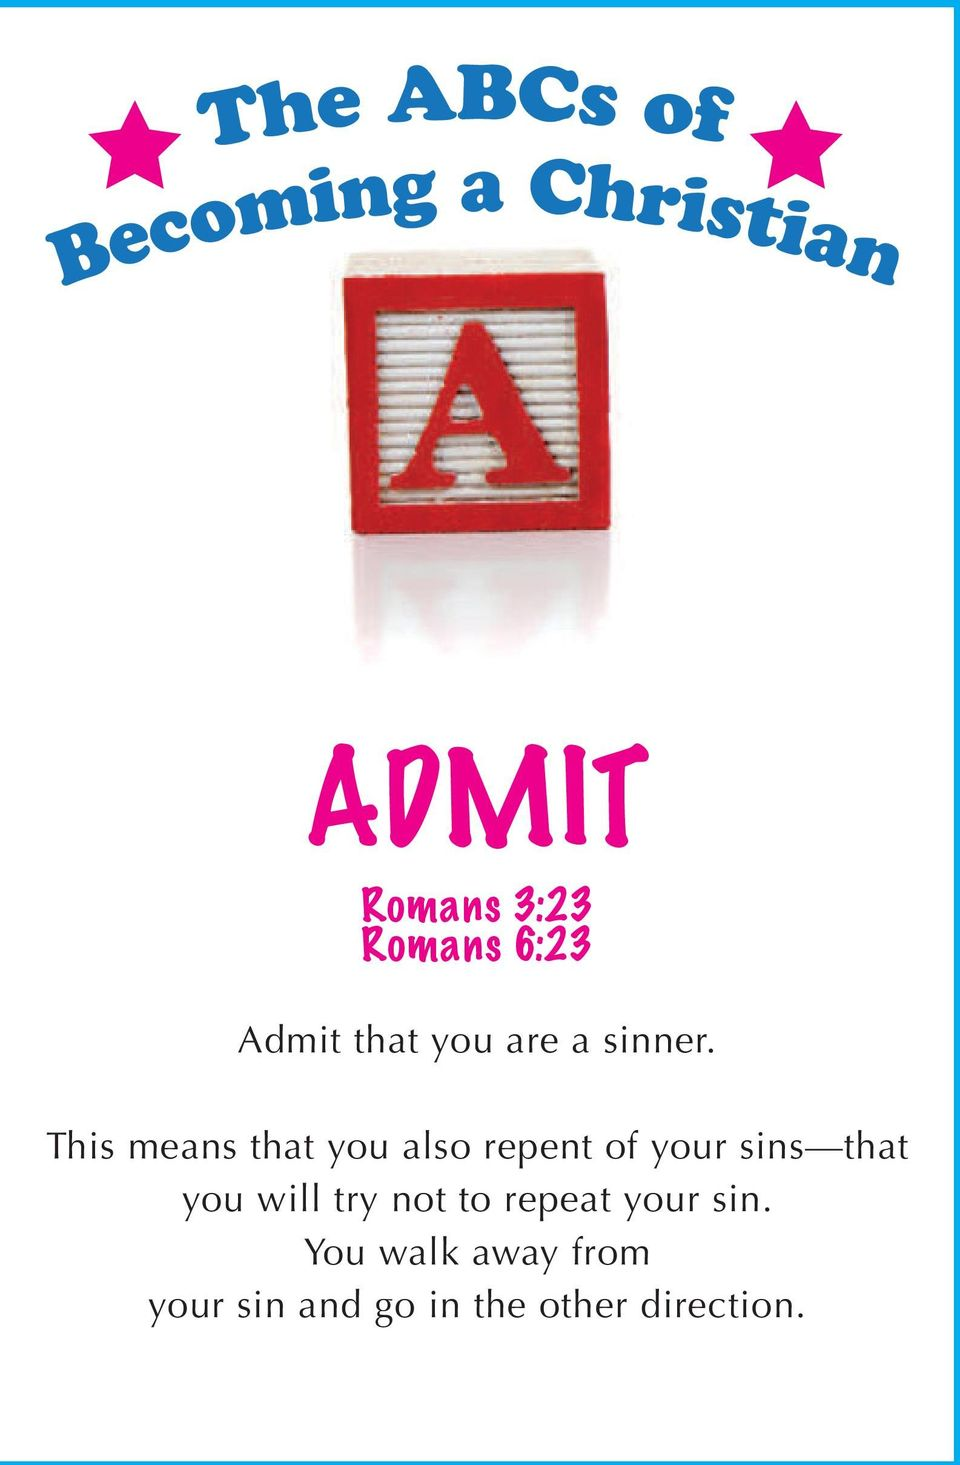 This means that you also repent of your sins that